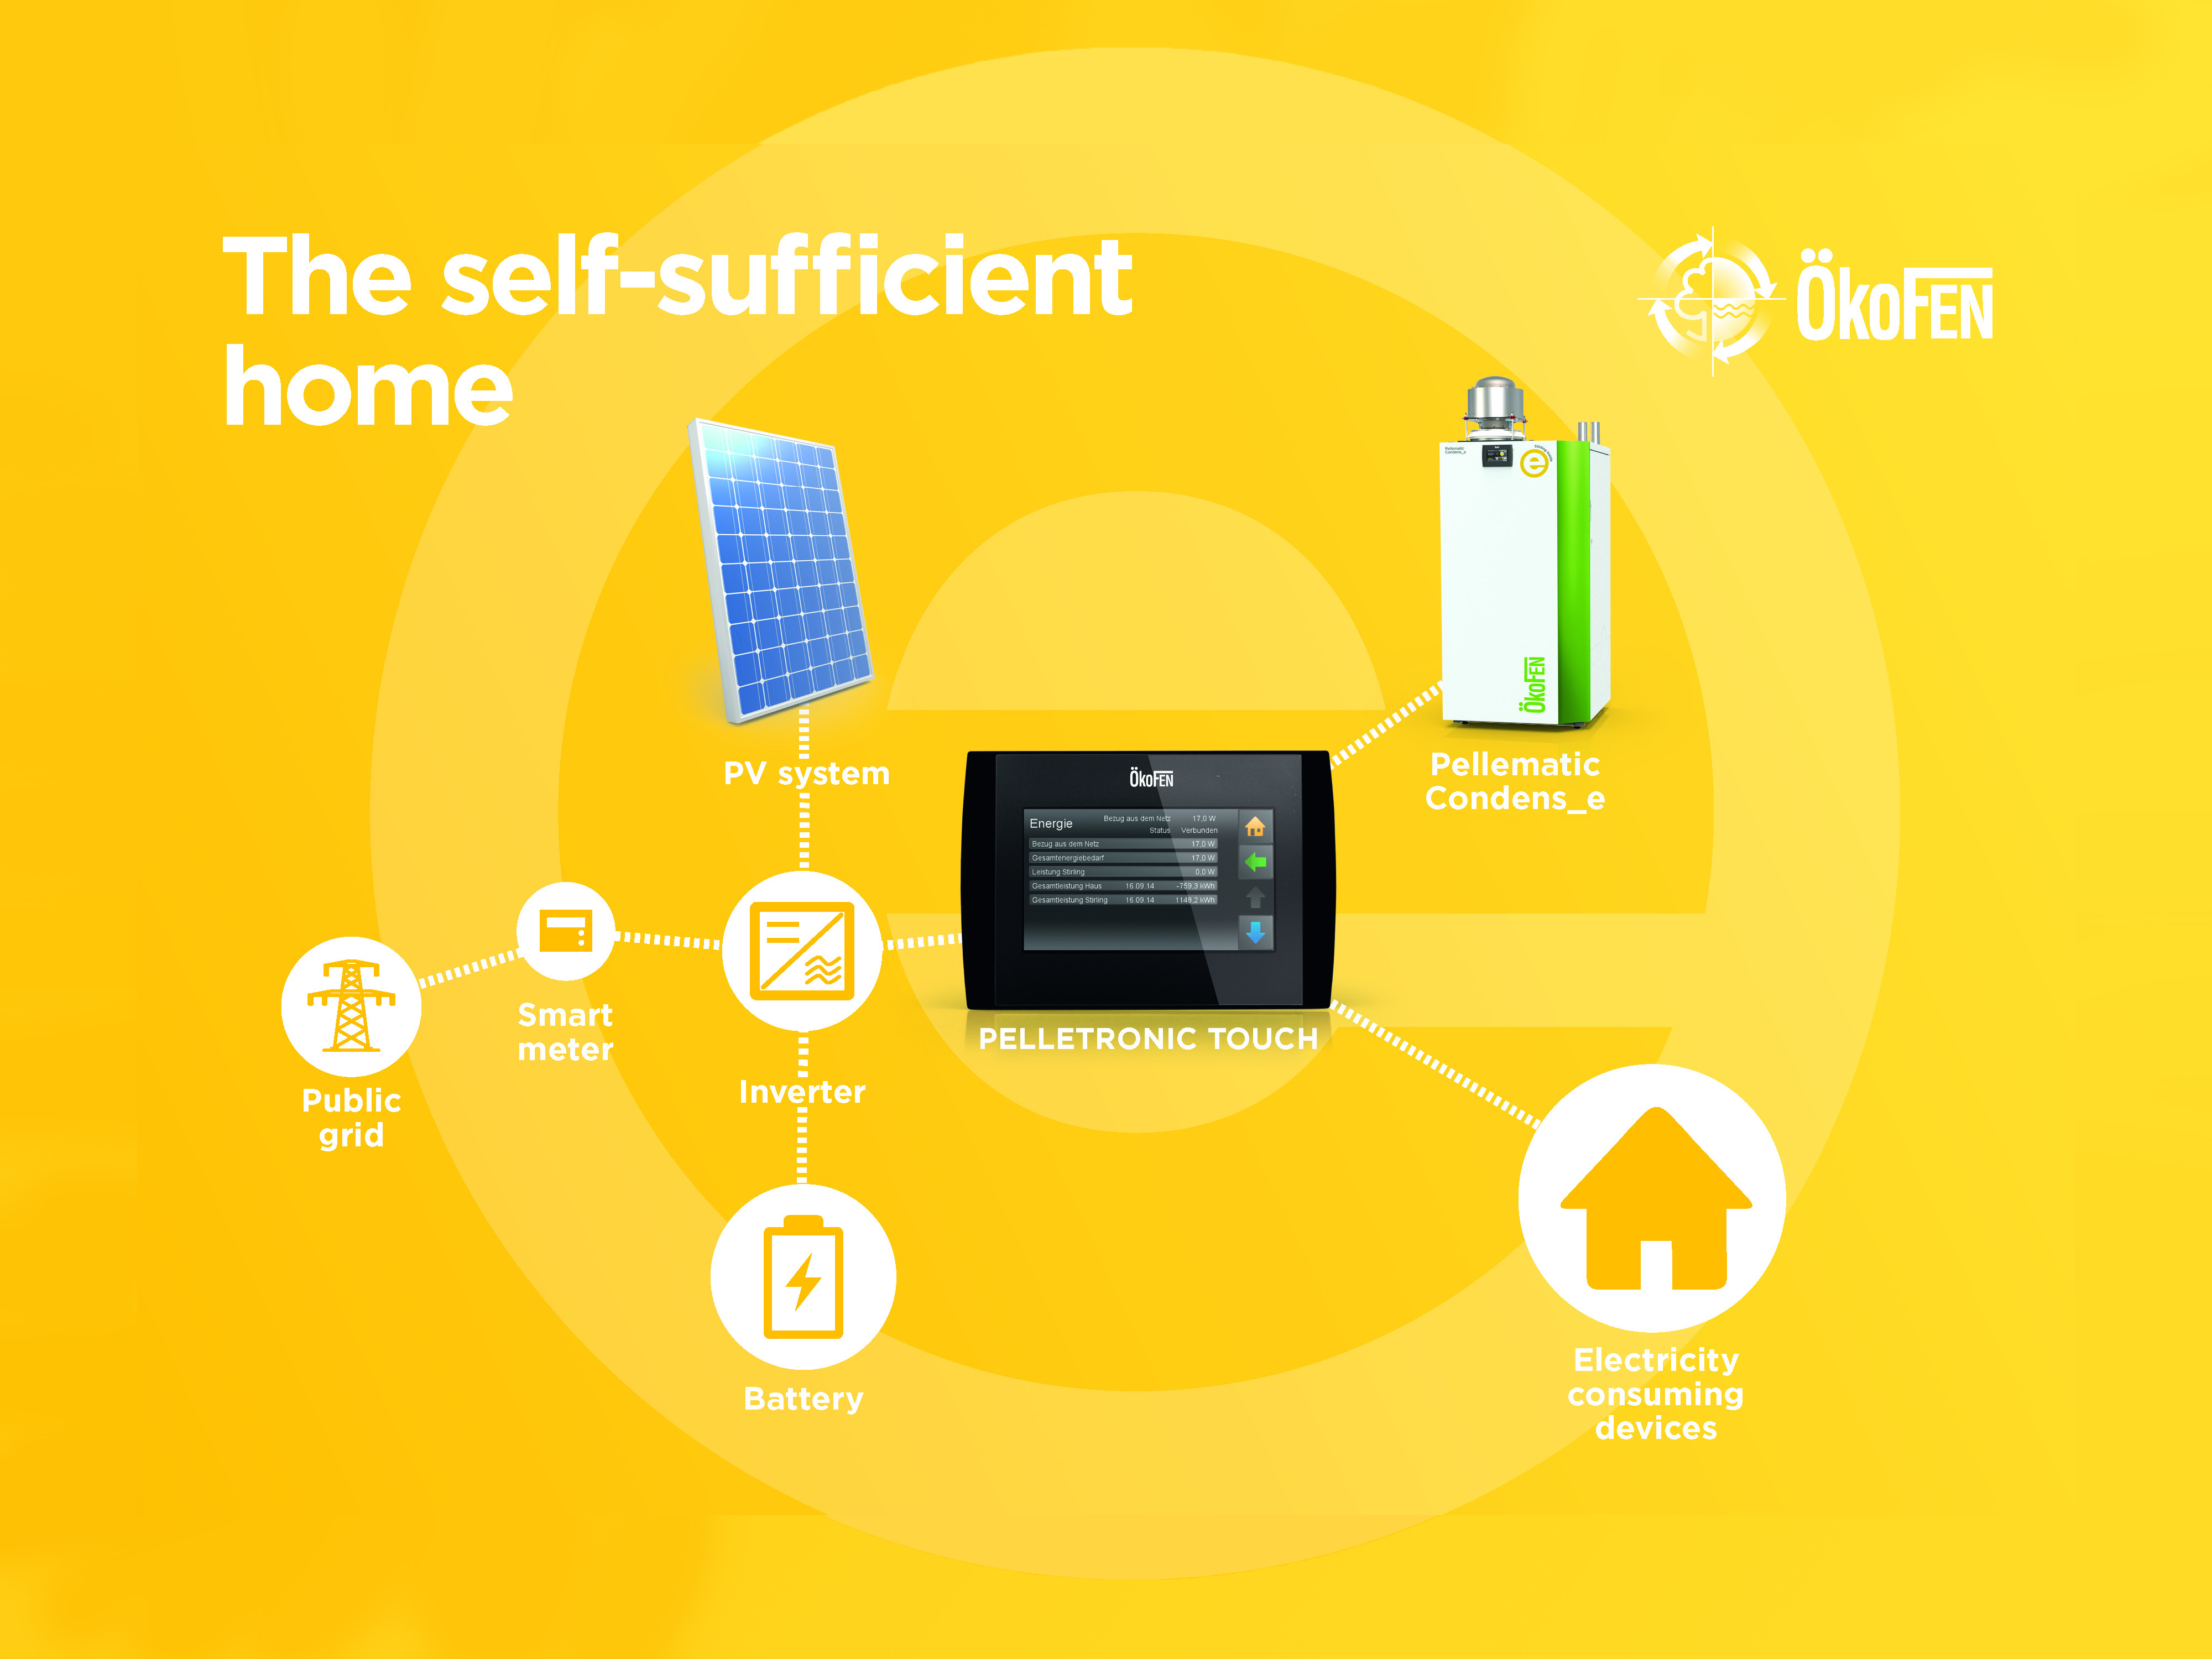 Kofen Presents Fully Self Sufficient Family Home Sun Wind Energy Electricity In The With New System Wants To Enable Customers Supply Themselves 100